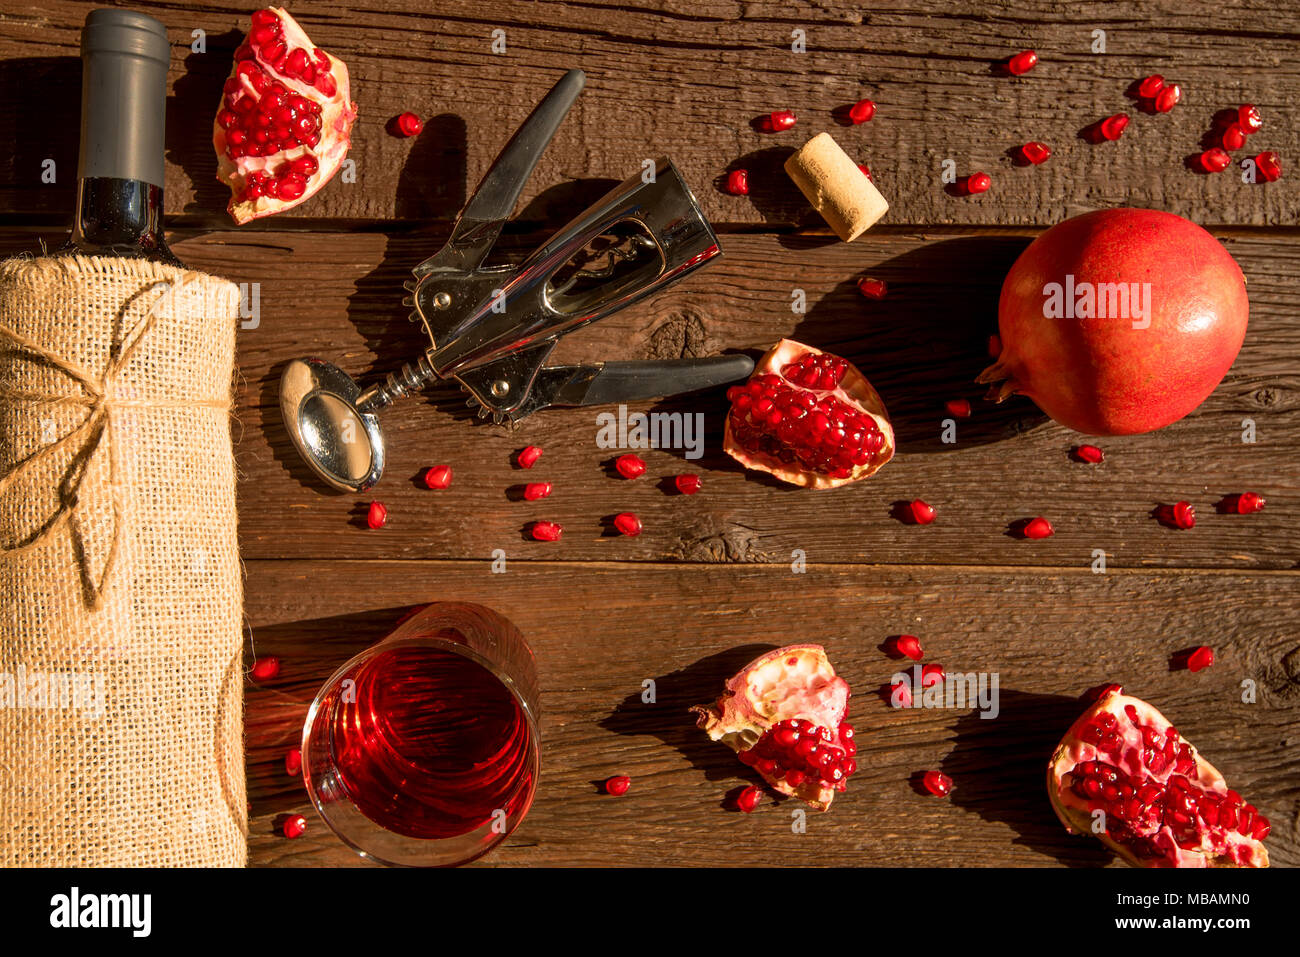 Top view pomegranate wine, bottle opener and fruit - Stock Image